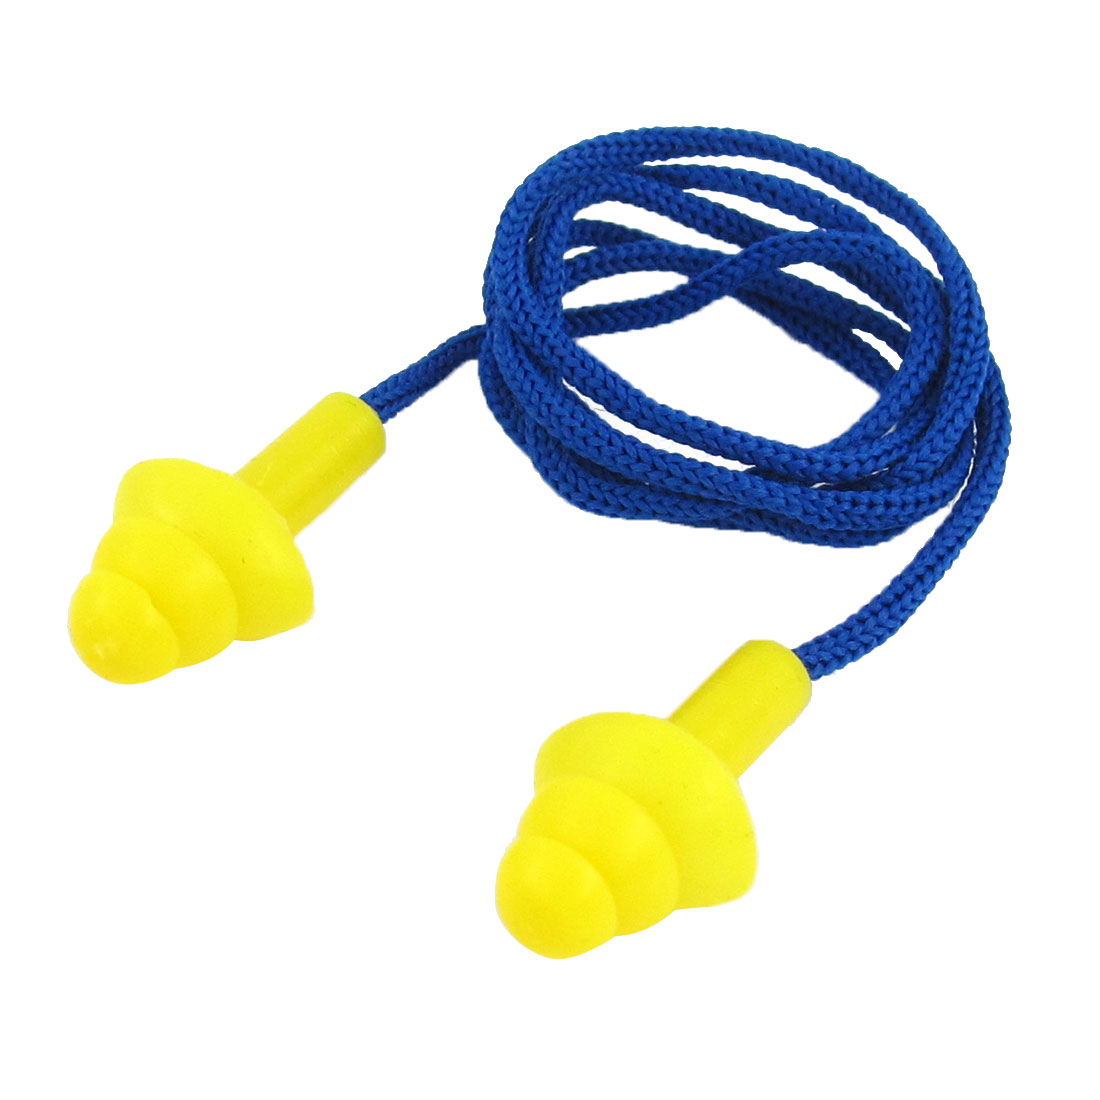 Nylon String Swimming Flexible Silicone Ear Plugs Earplugs Blue Yellow